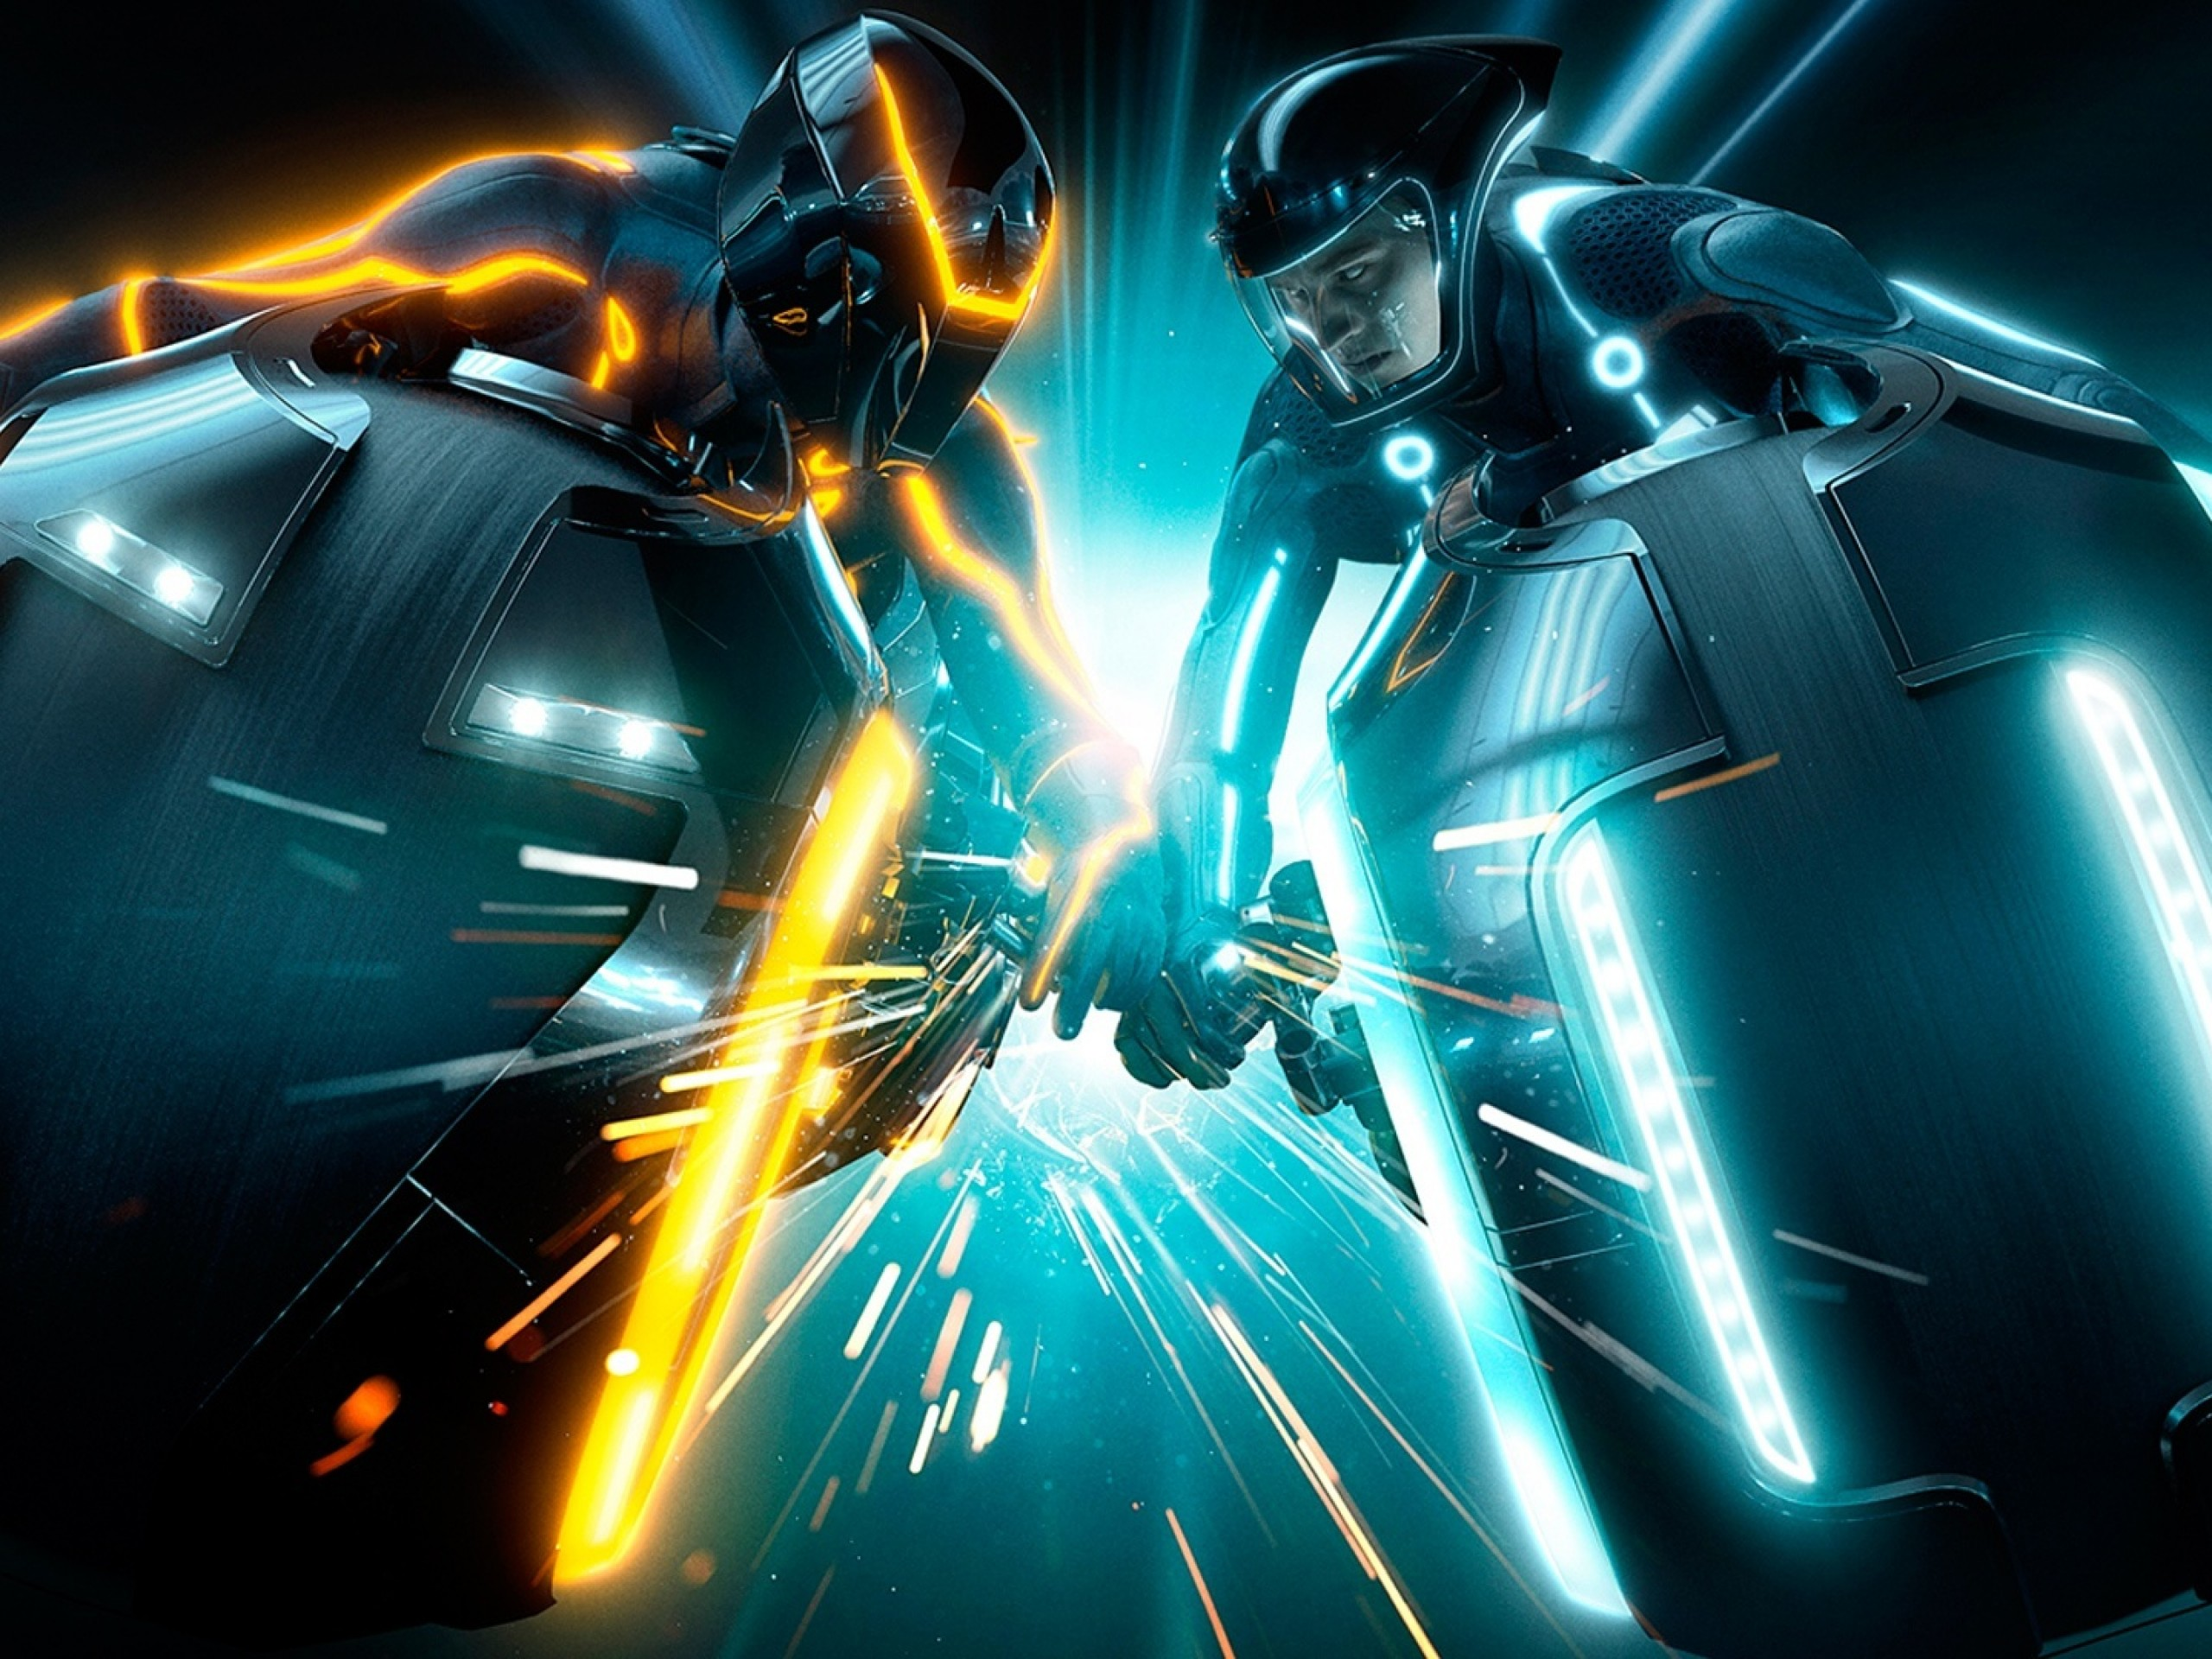 TRON 3 starts filming fall 2015.